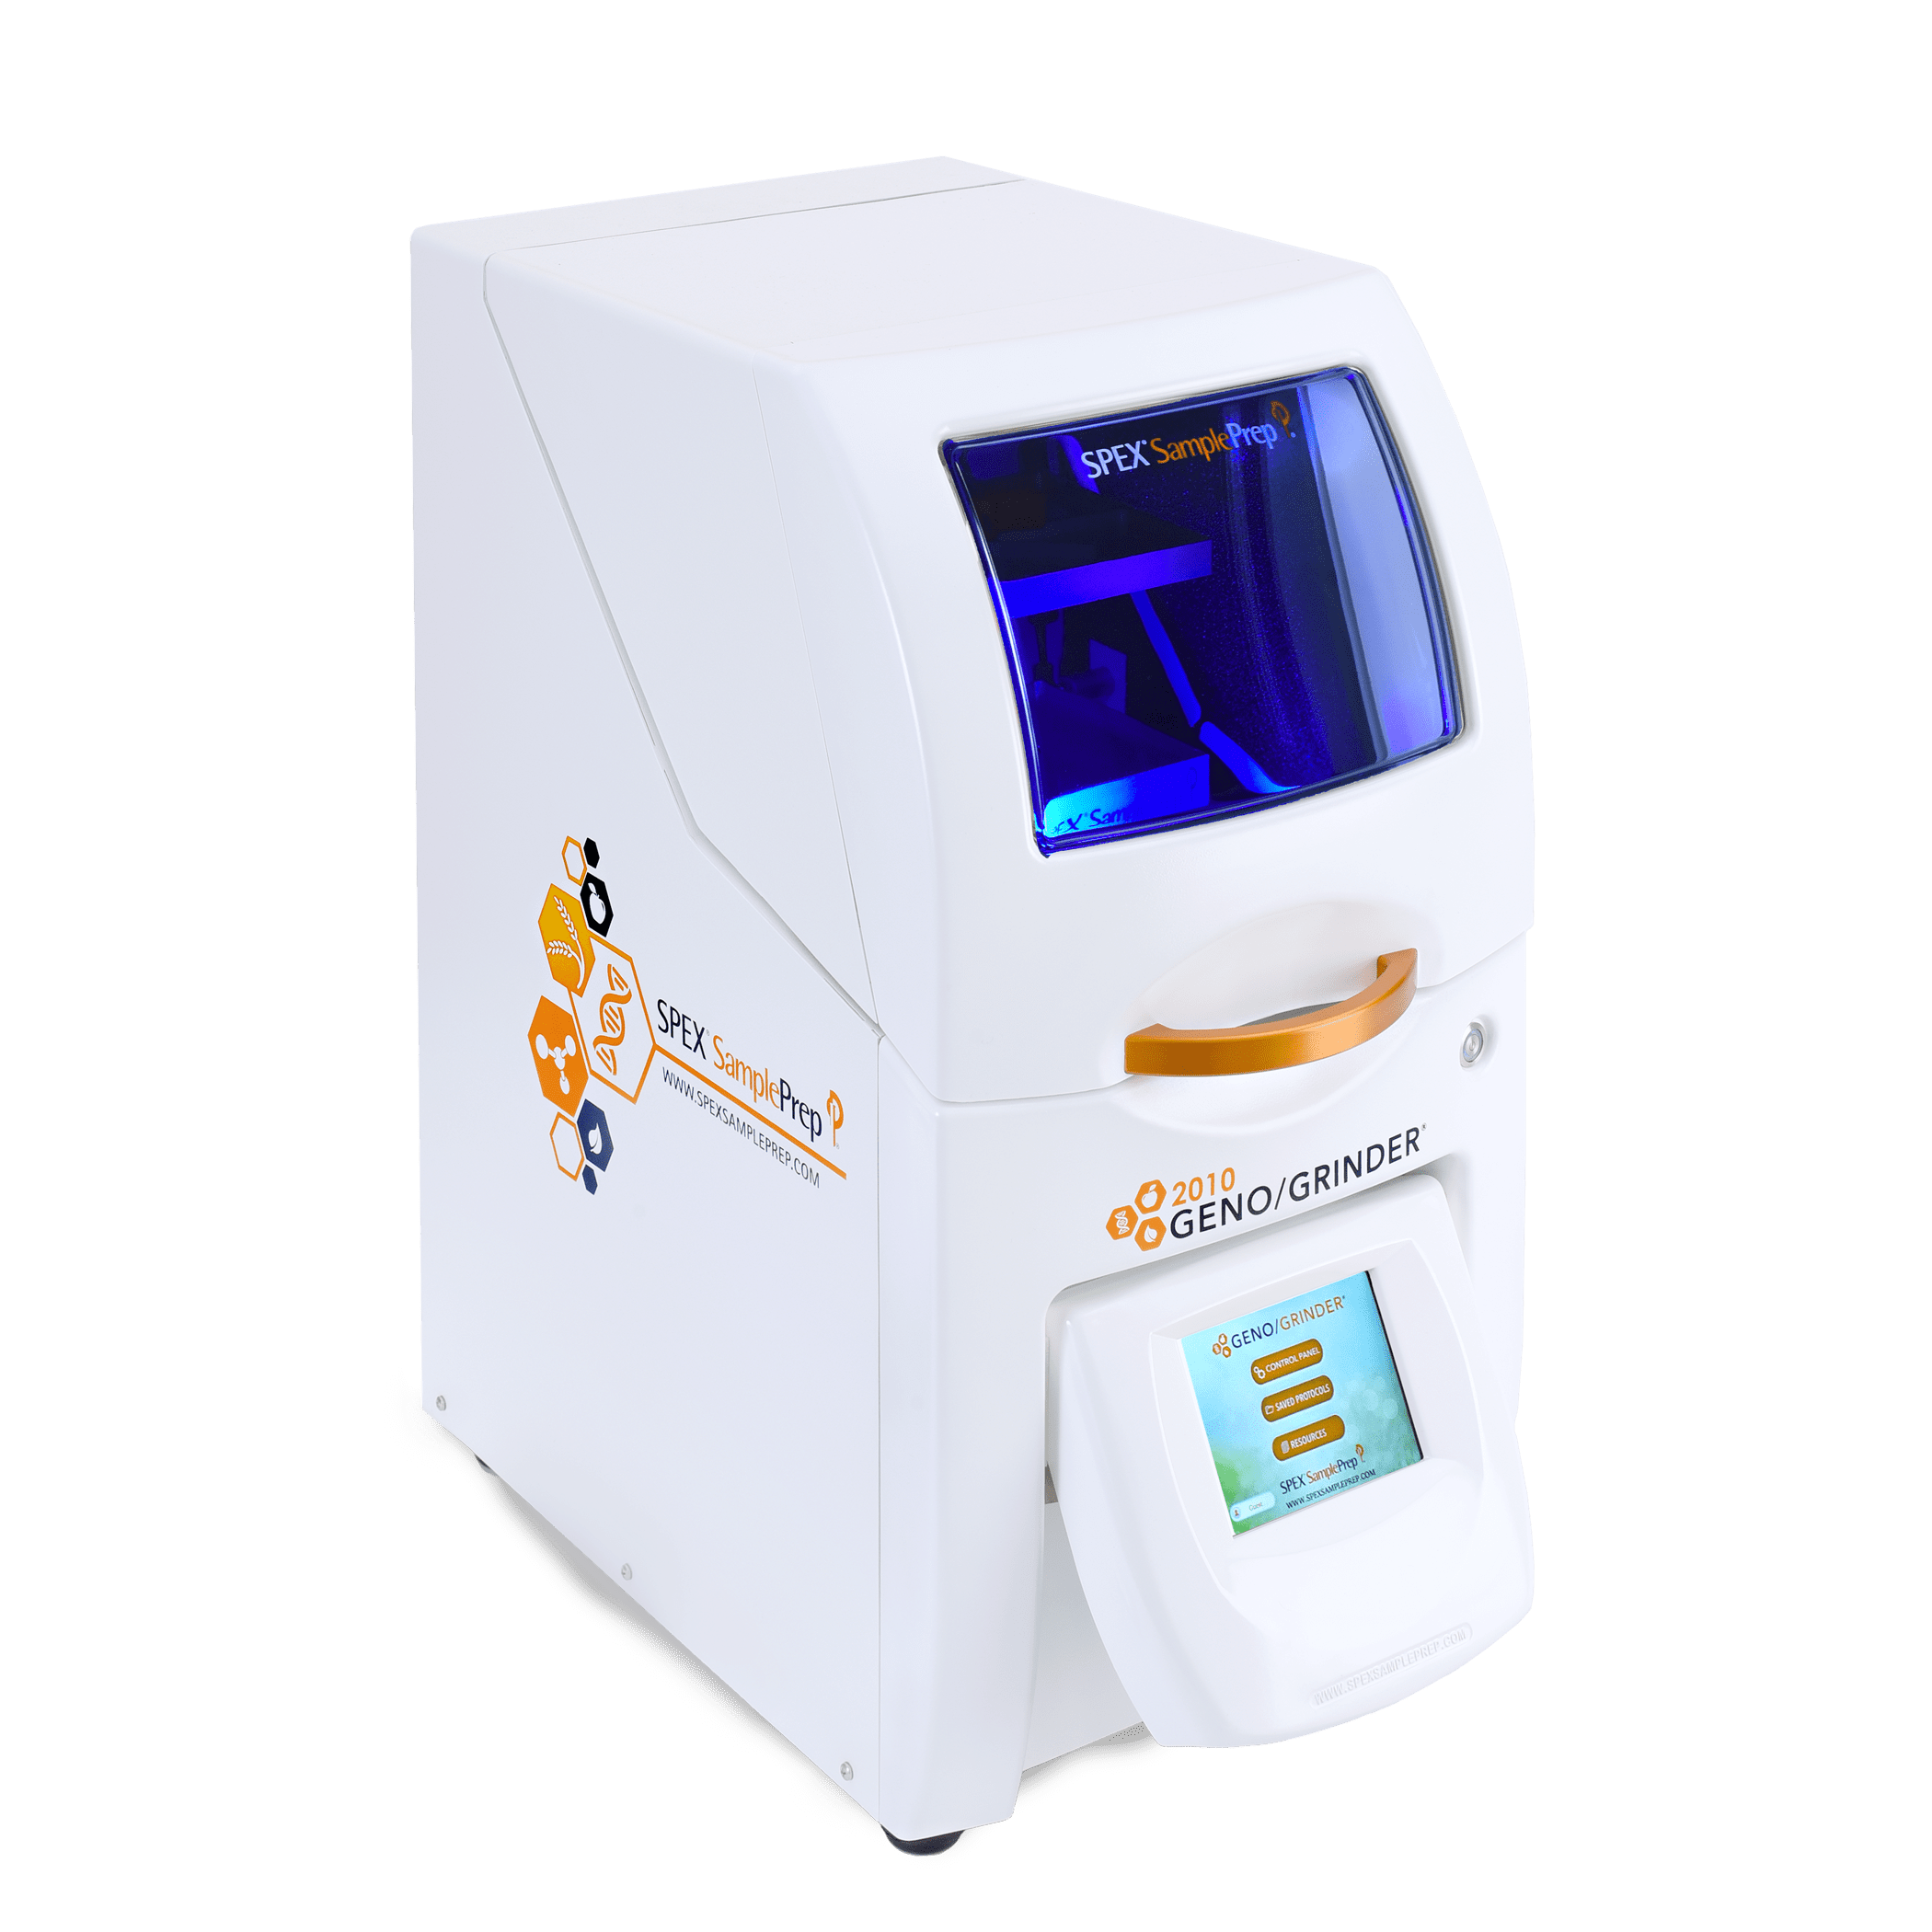 SPEX's 2010 Geno/Grinder® Automated Tissue Homogenizer and Cell Lyser